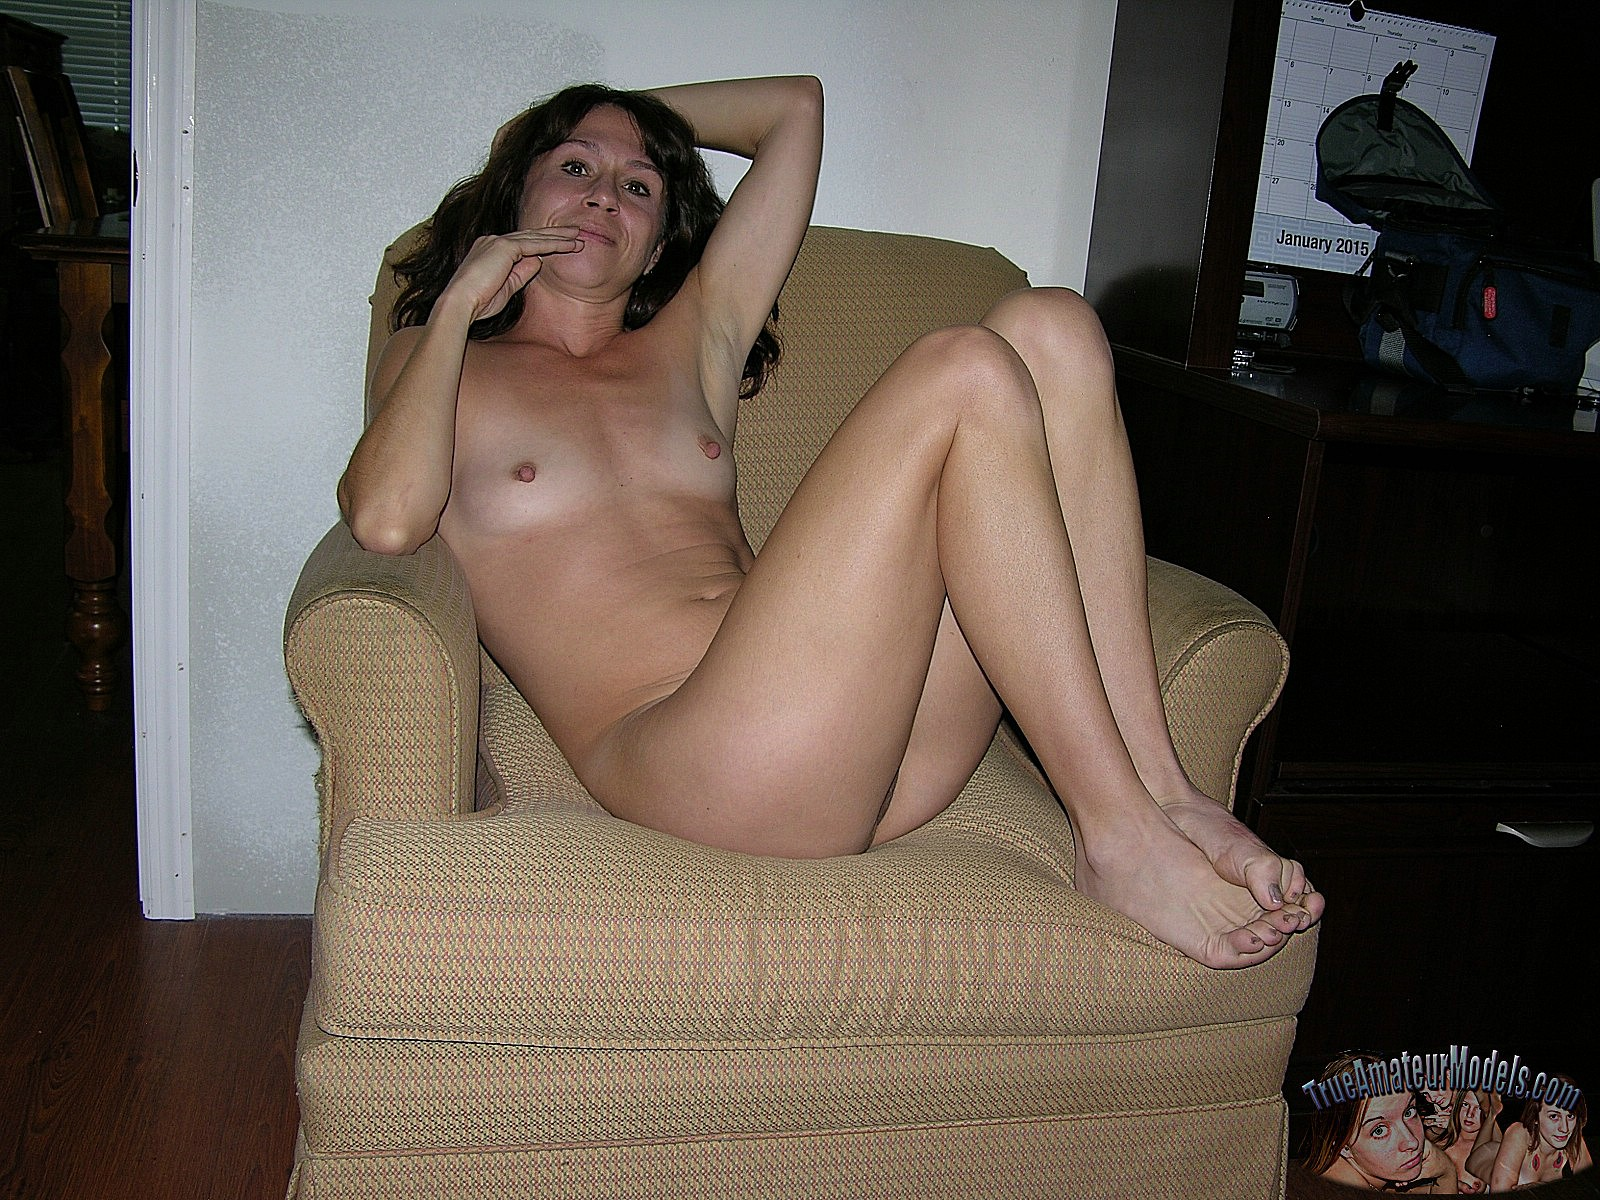 nude-in-chair | True Amateur Models